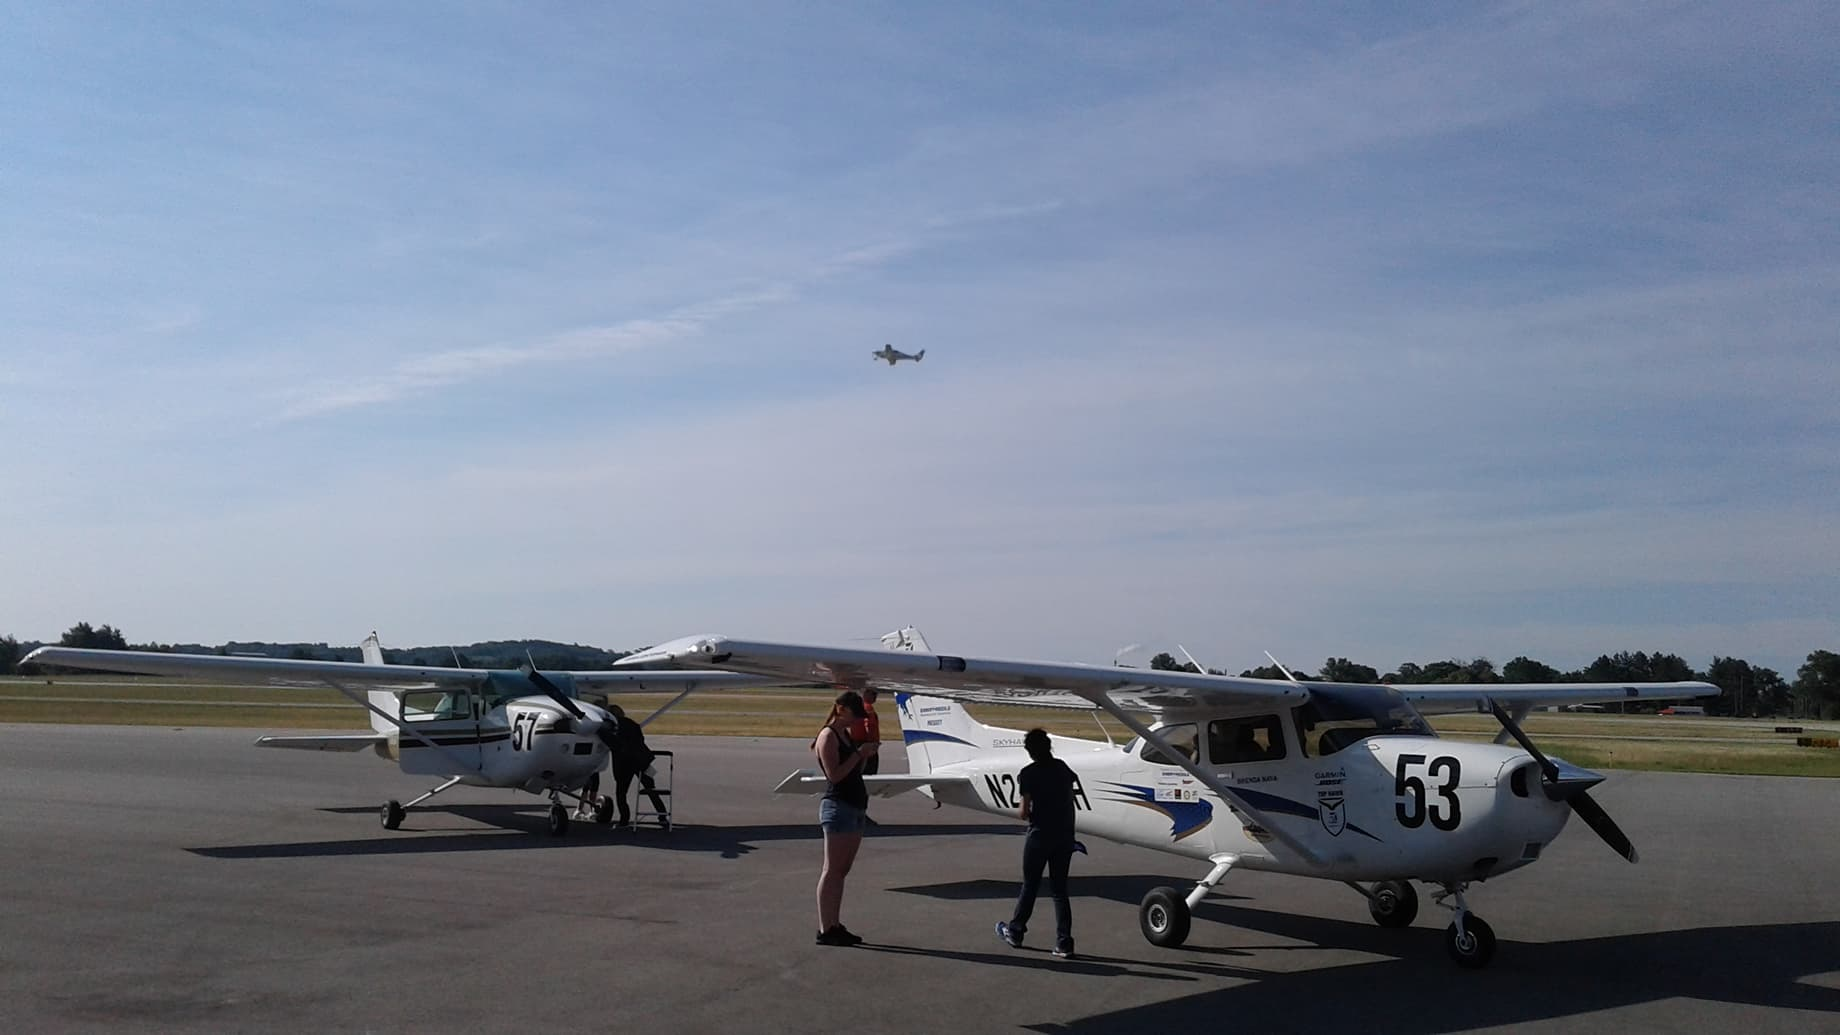 Wexford County Airport